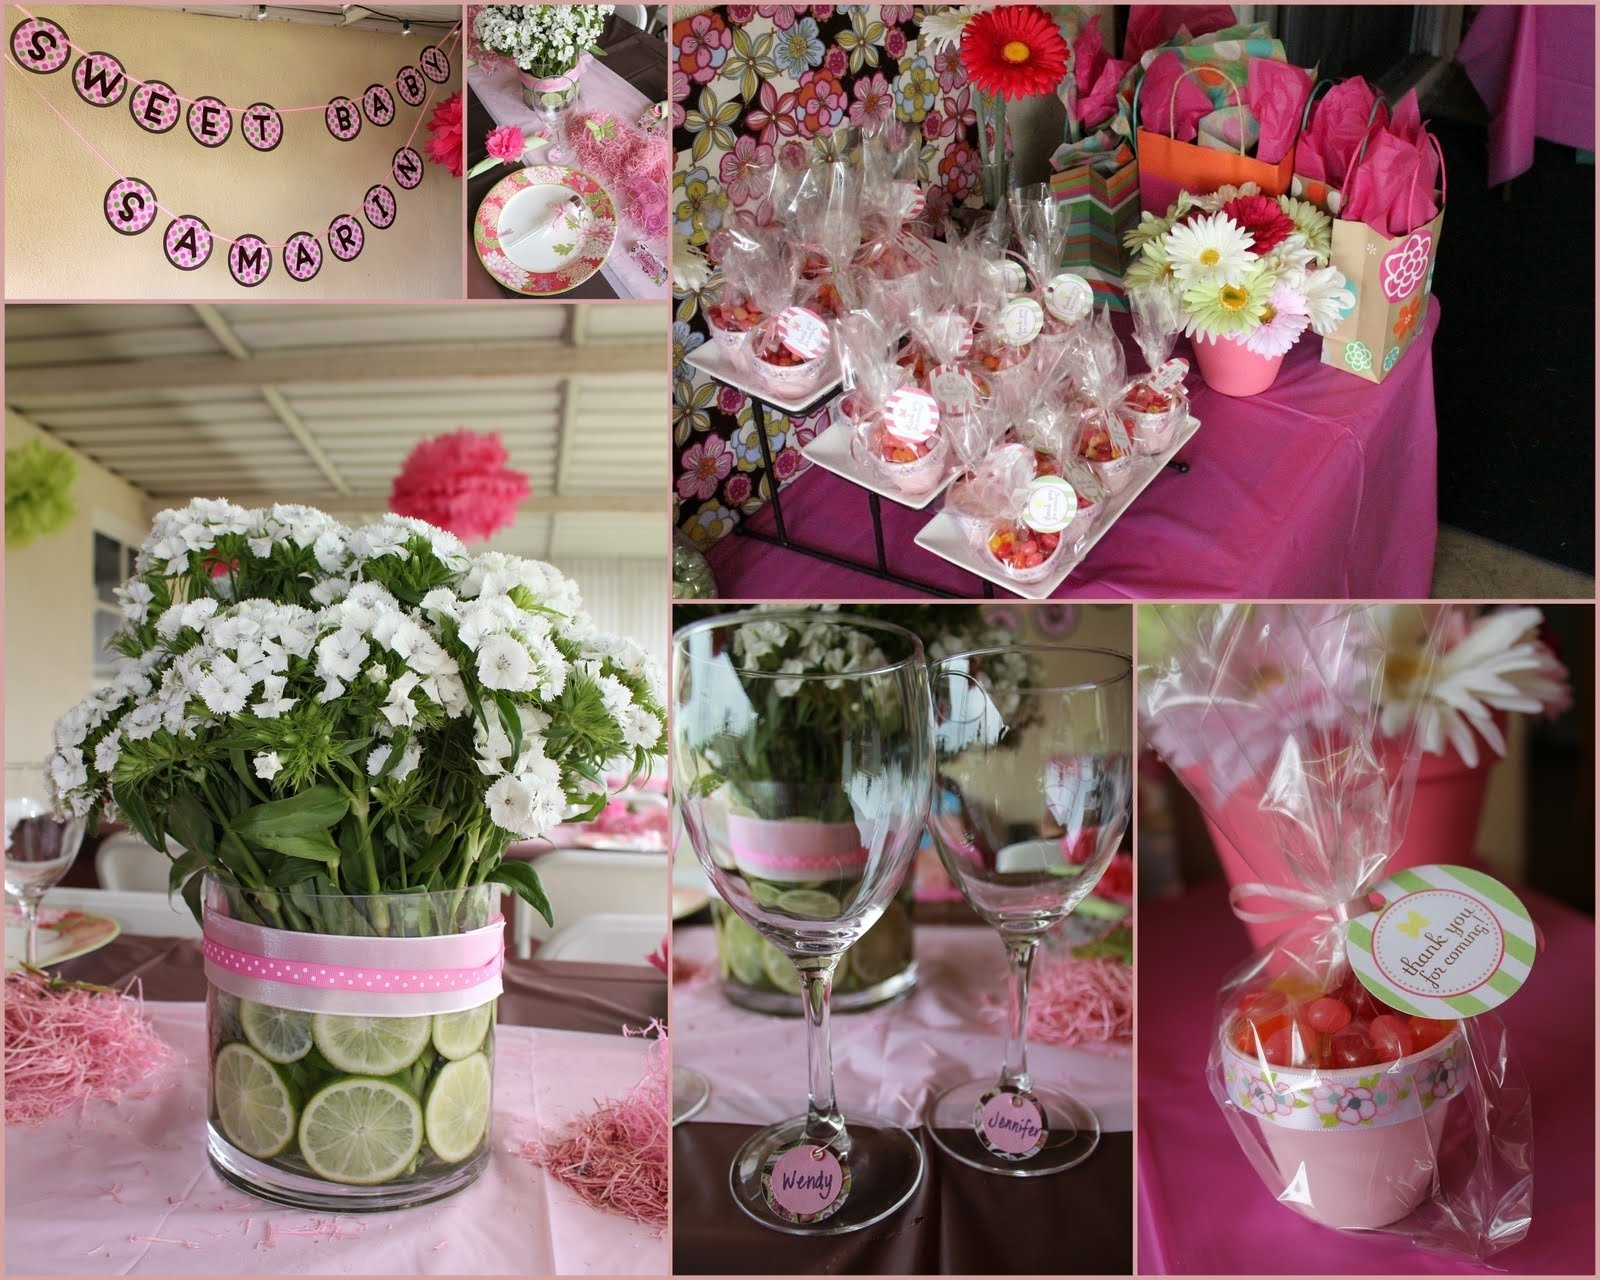 10 Gorgeous Ideas For Centerpieces For Baby Shower simple and funny baby shower centerpiece ideas for boys and shower 2021